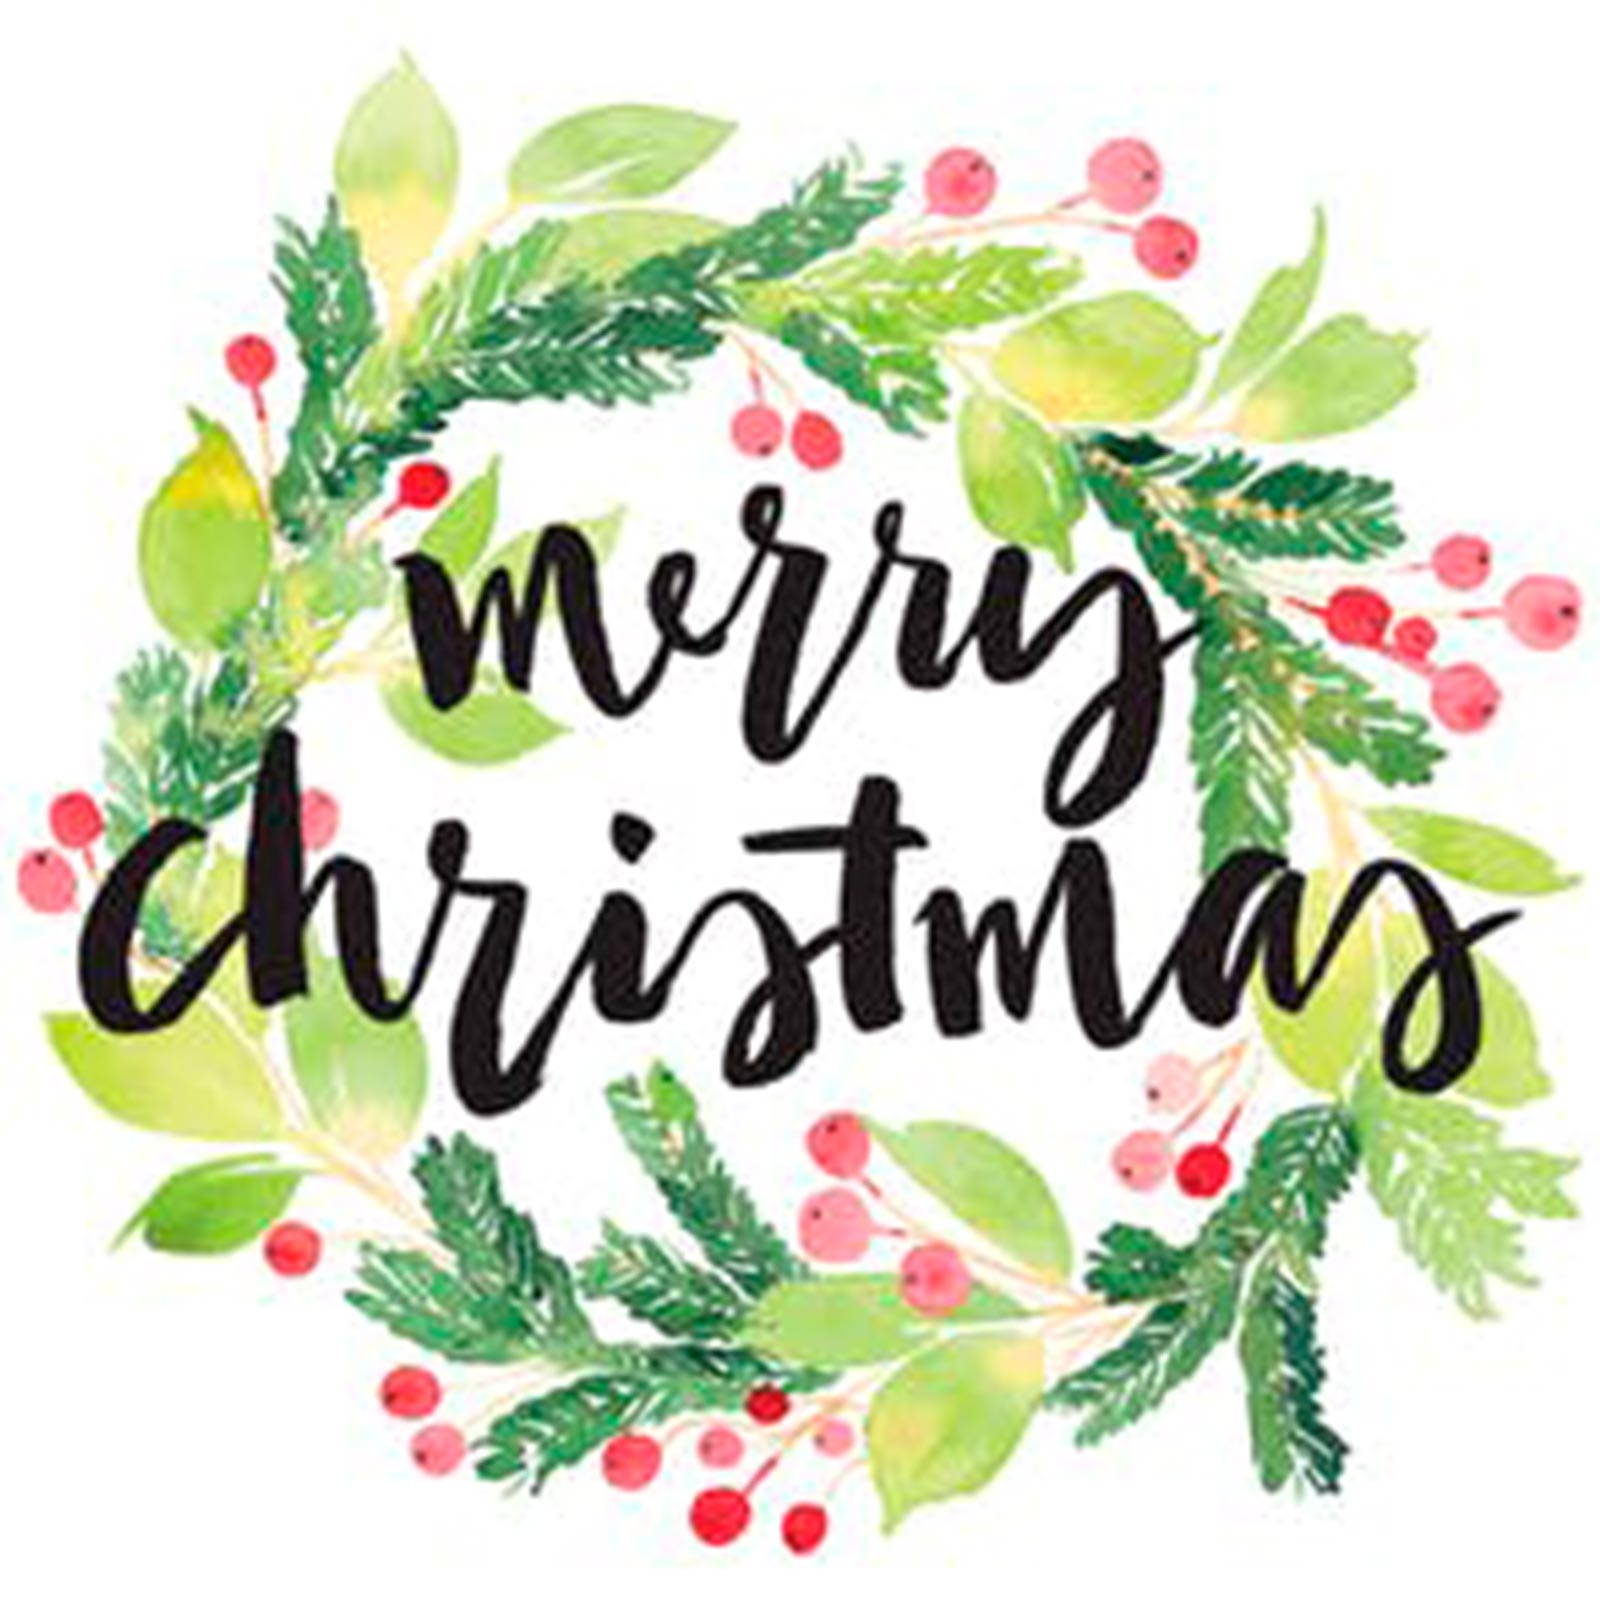 Free Christmas Cards To Print Out And Send This Year | Reader's Digest - Free Printable Christmas Cards